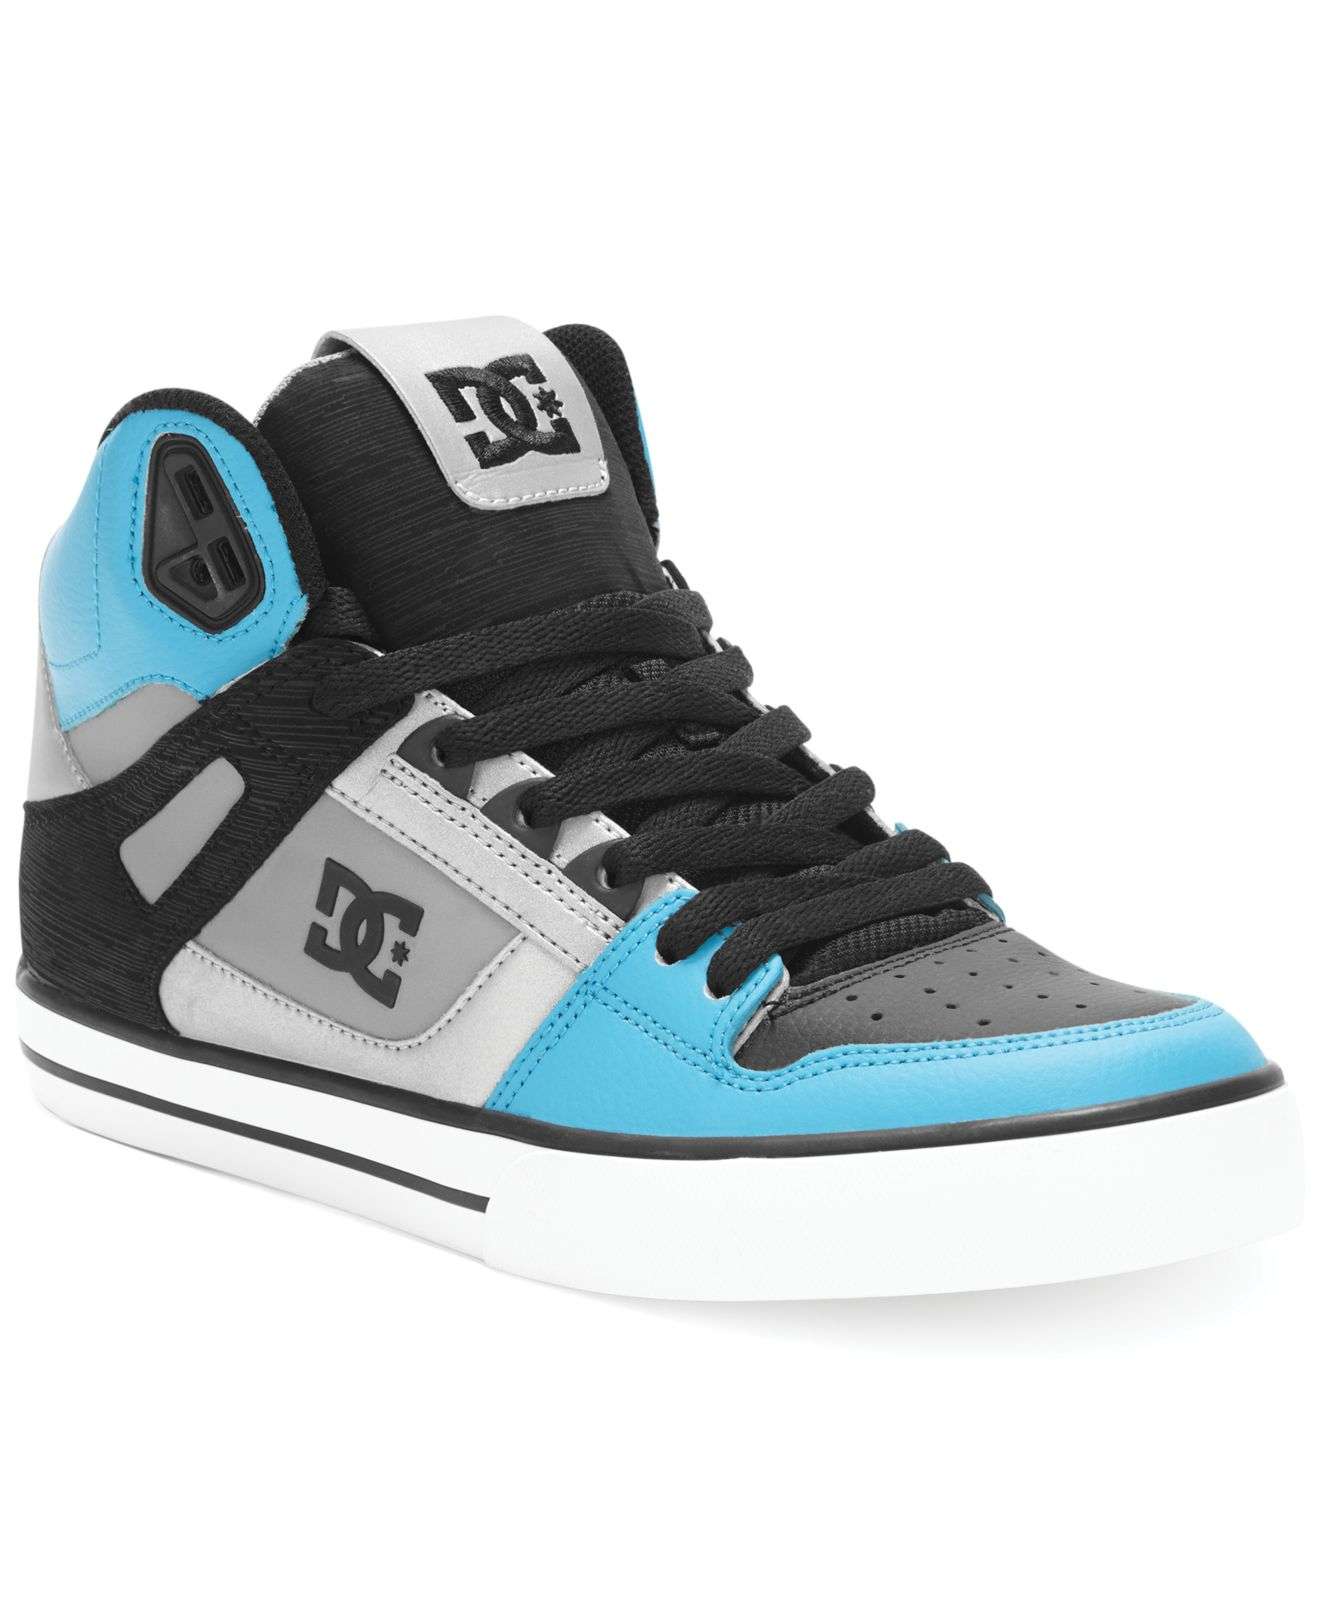 00bf079b006 DC Shoes Blue Spartan High Wc Sneakers for men